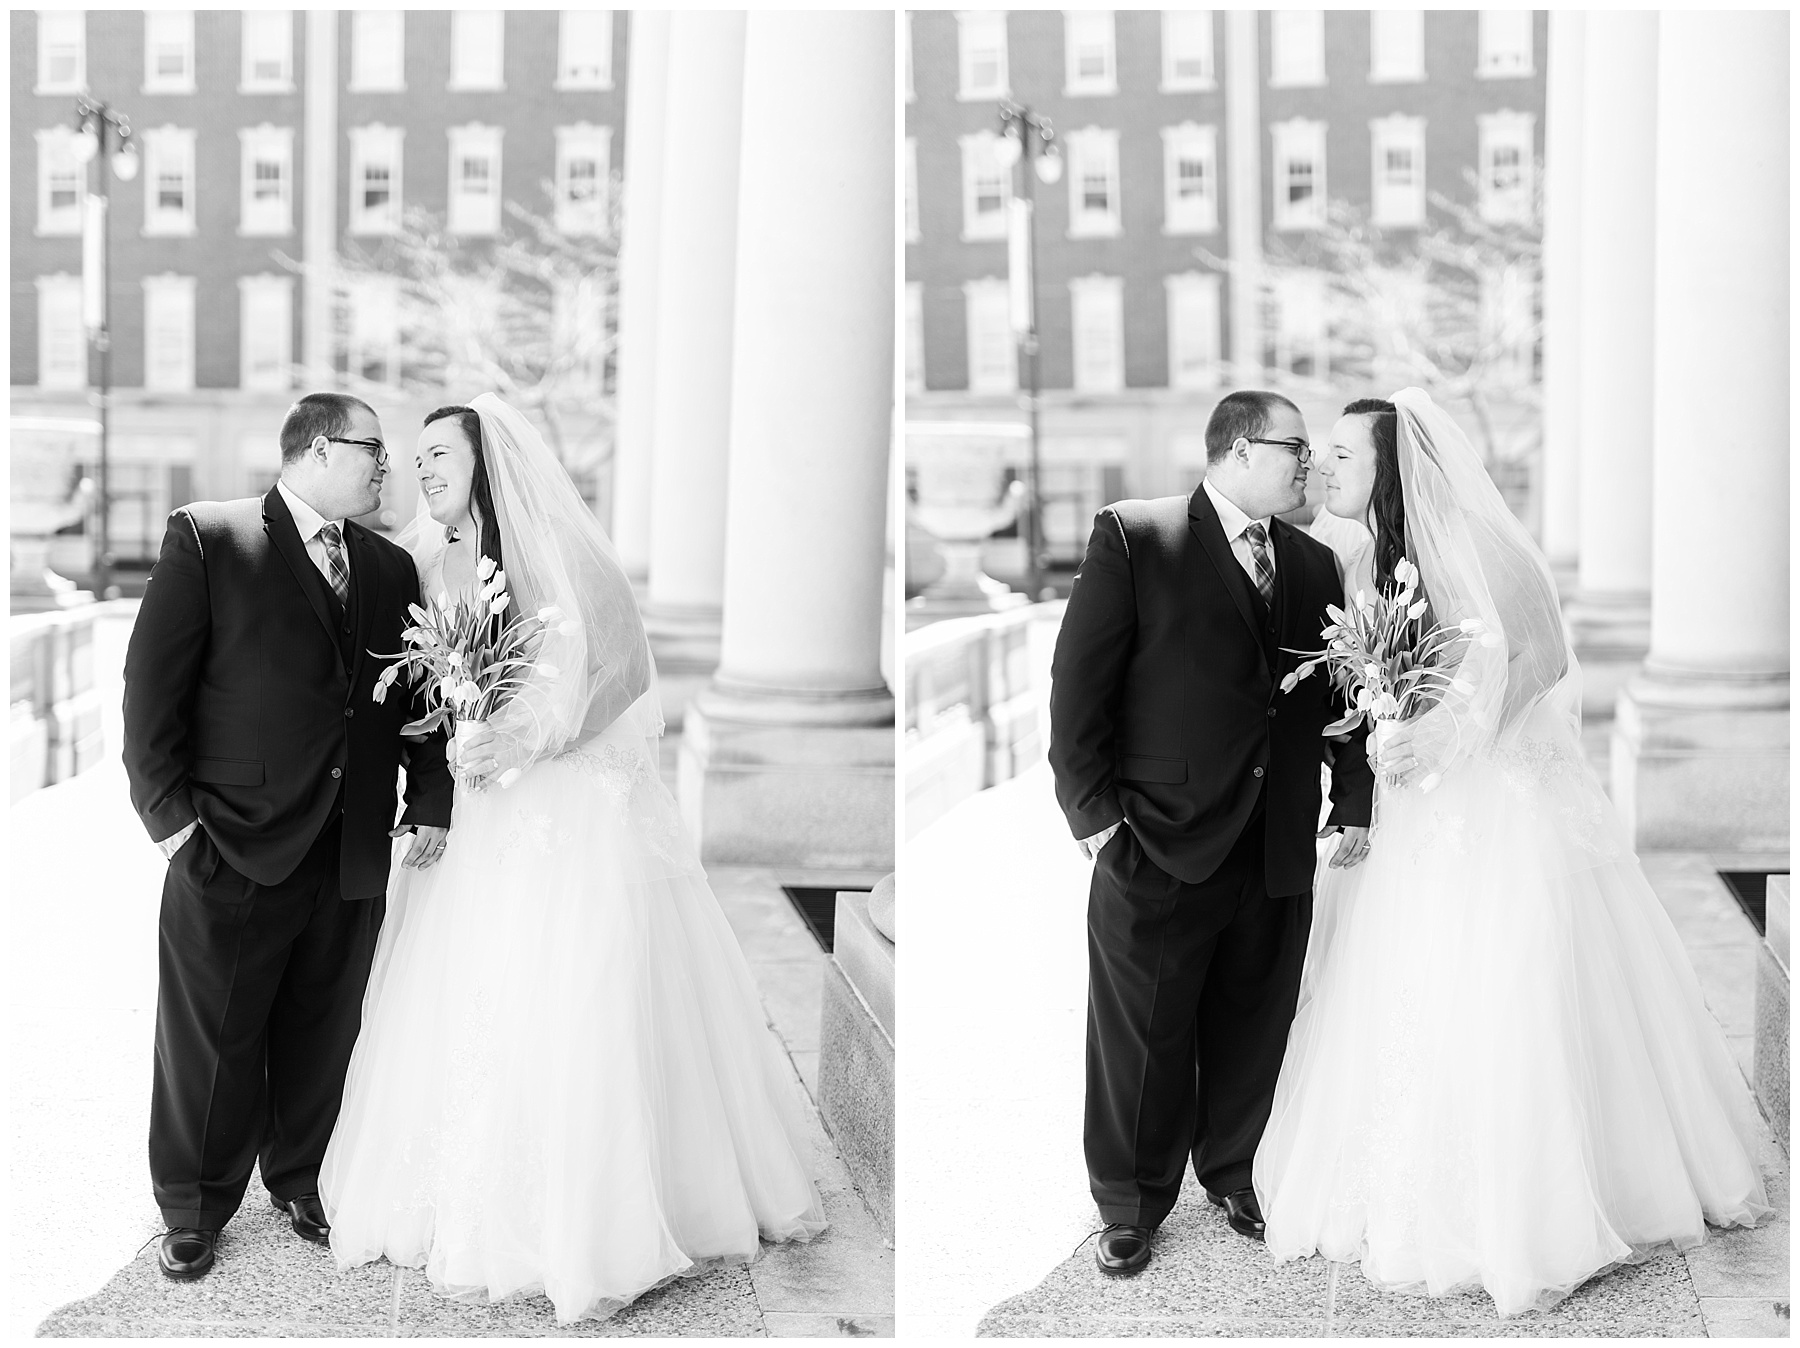 plus size couple in wedding attire taking wedding photos in downtown portland maine at city hall kissing holding tulips